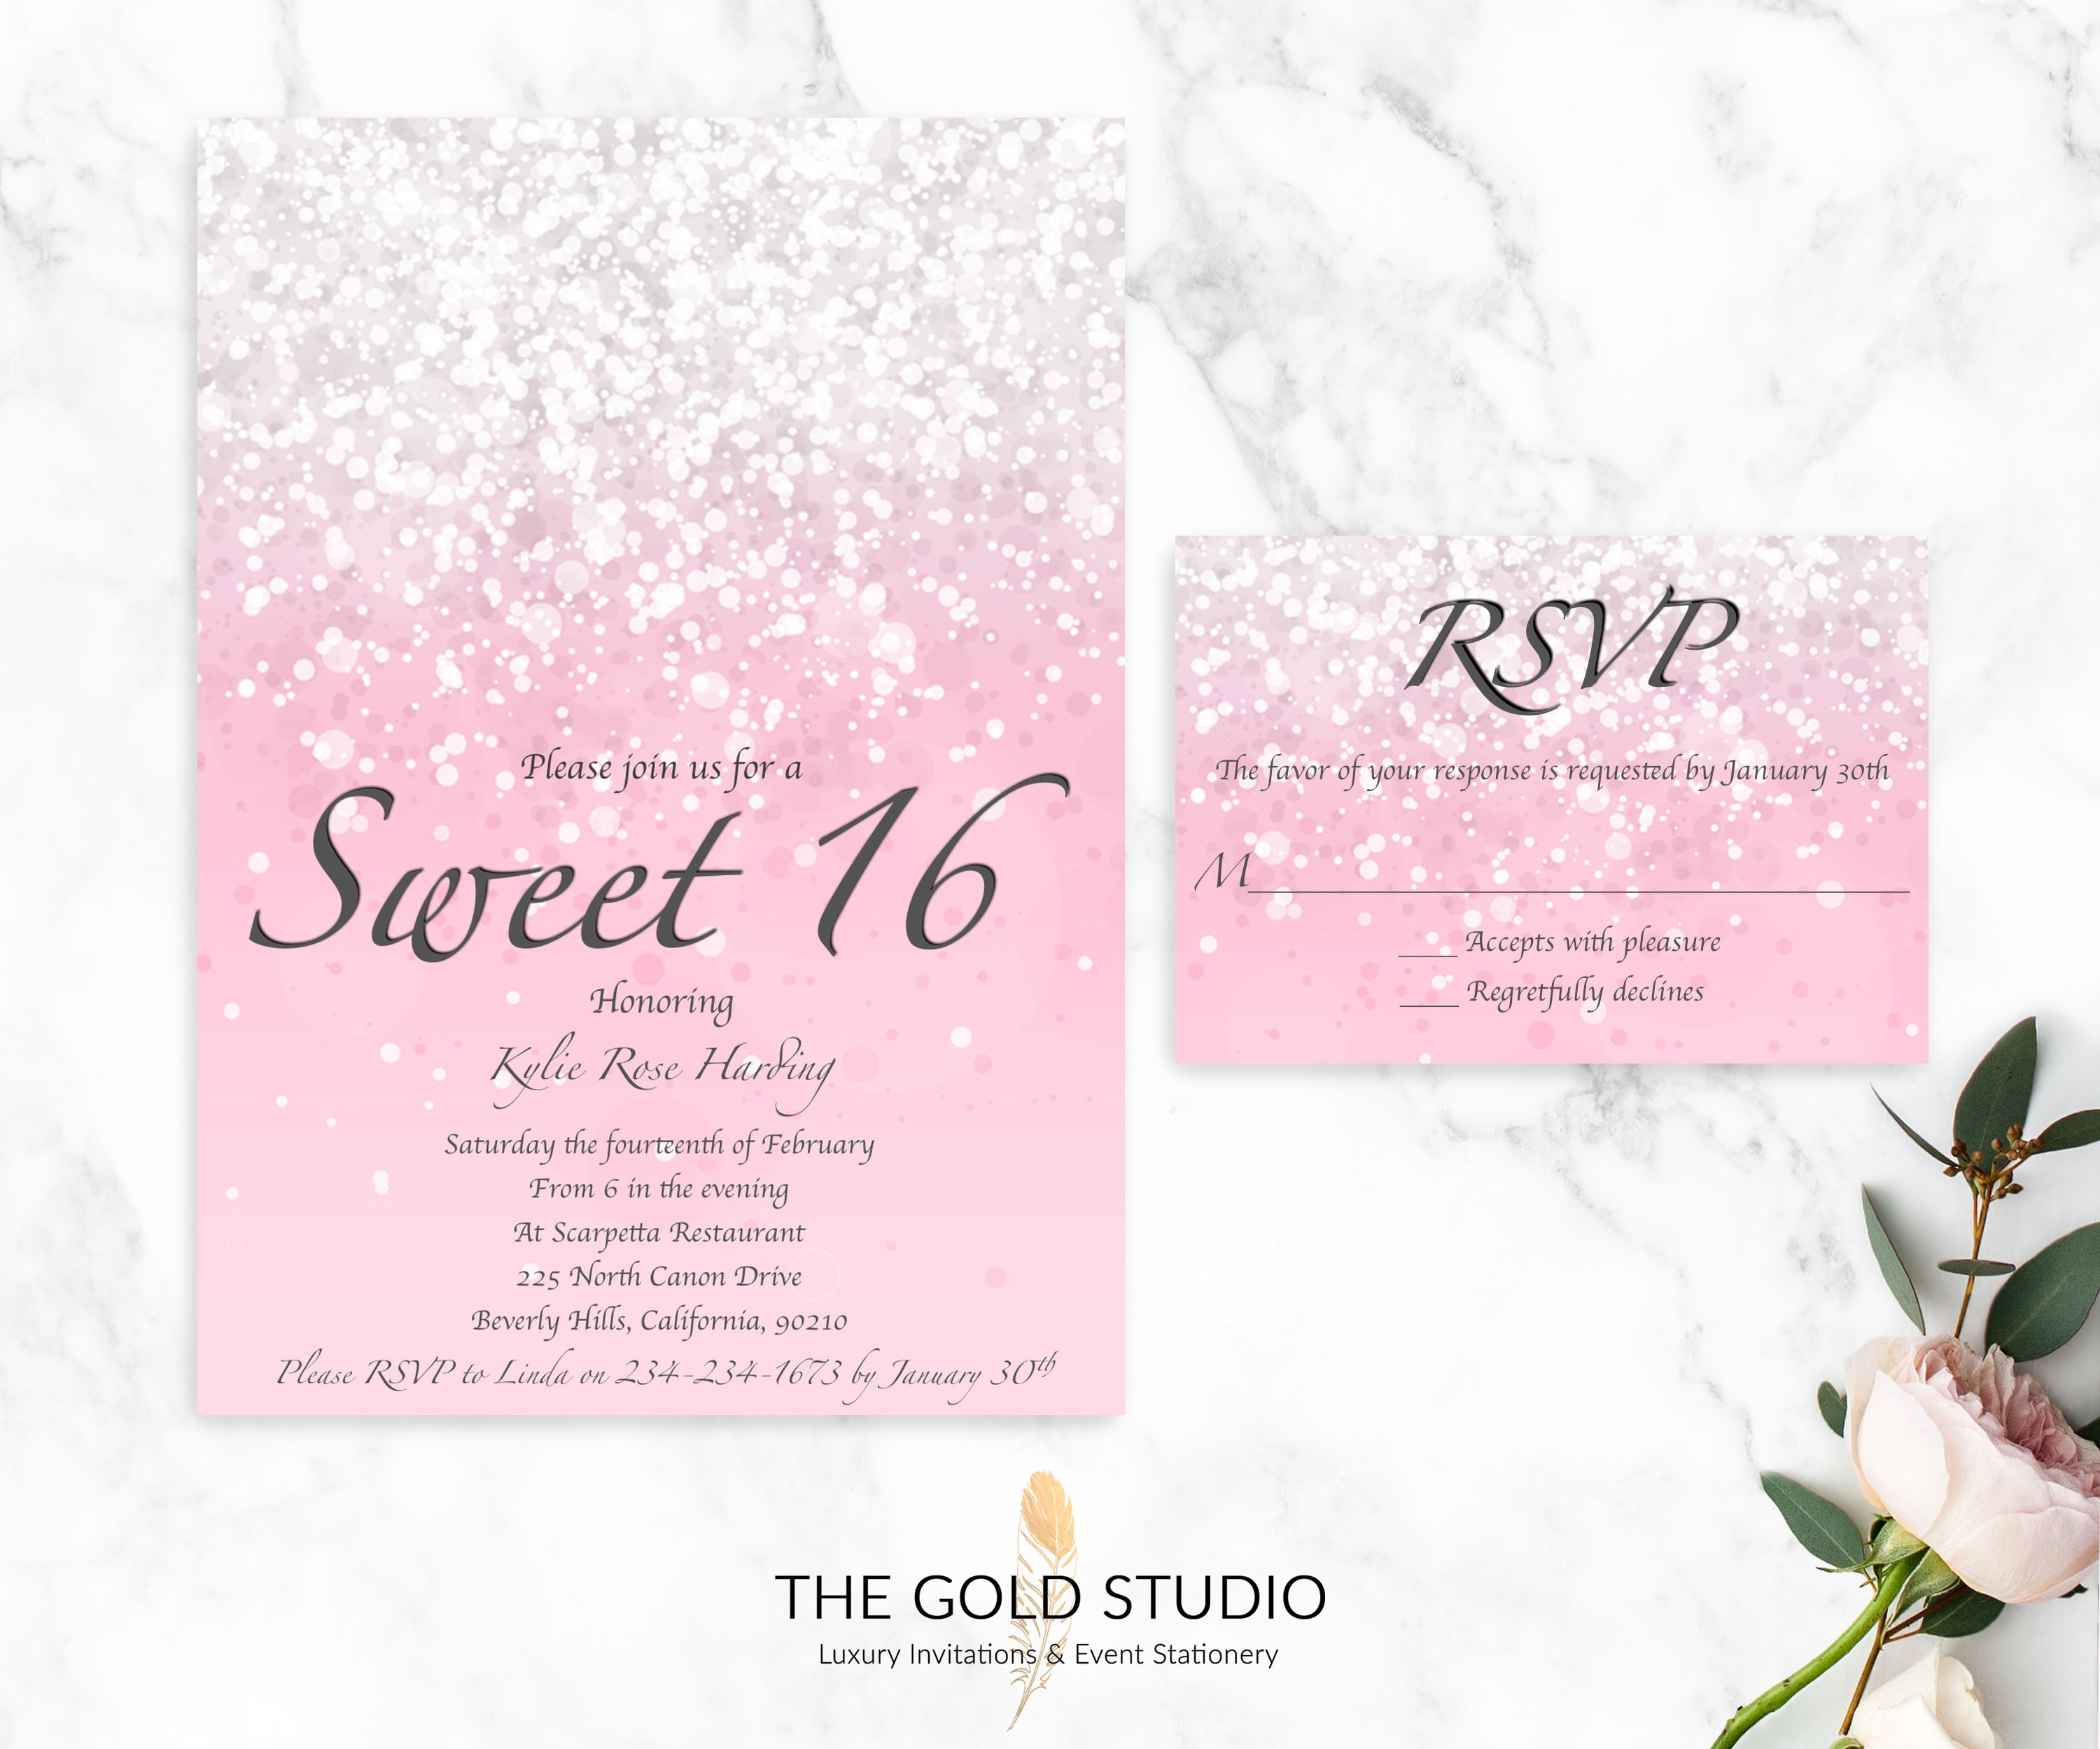 Sweet 16 Invitation RSVP Cards